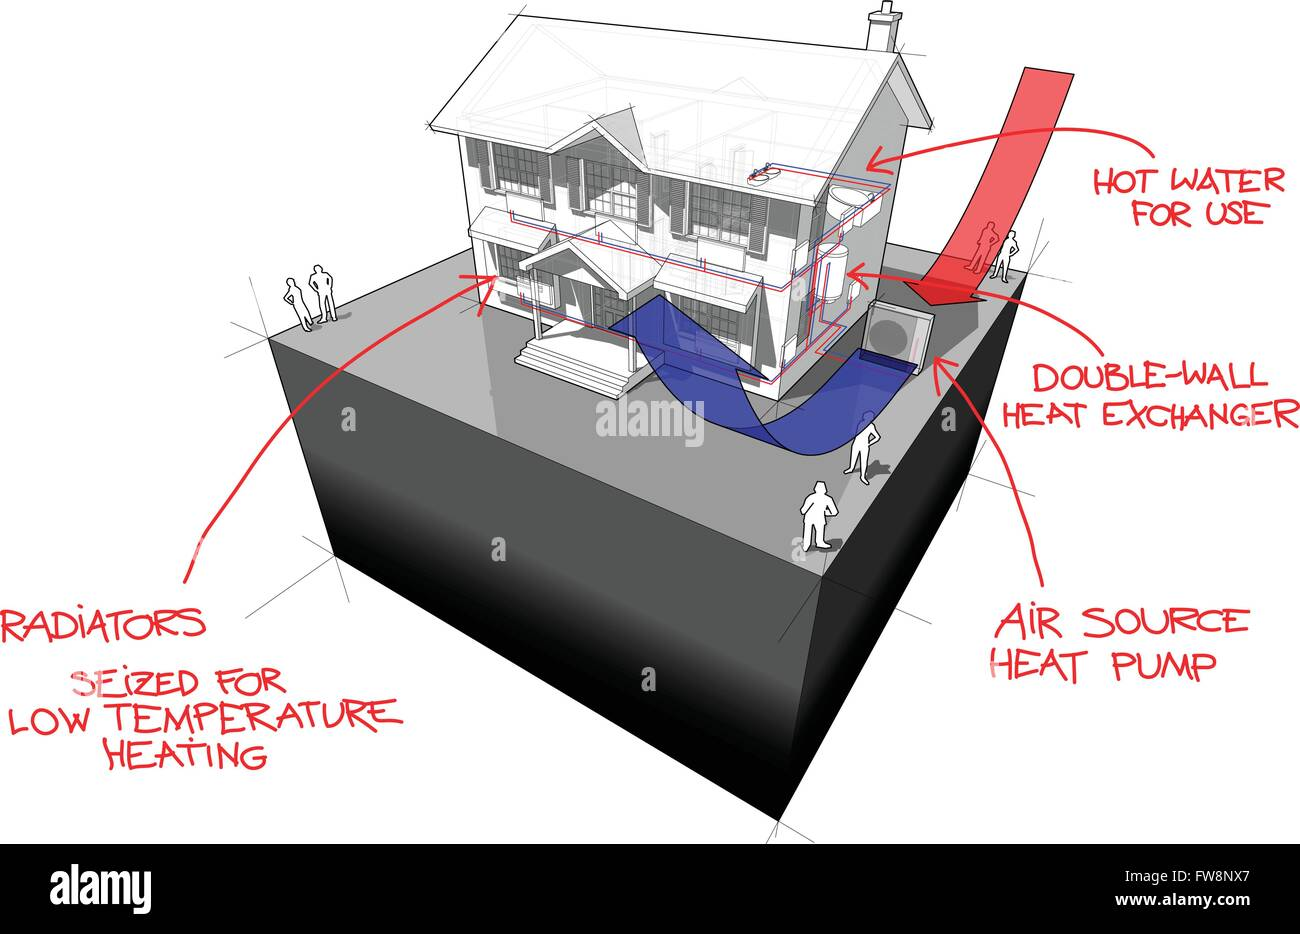 air source heat pump with radiators and solar panels diagram and hand drawn notes house diagram - Stock Image